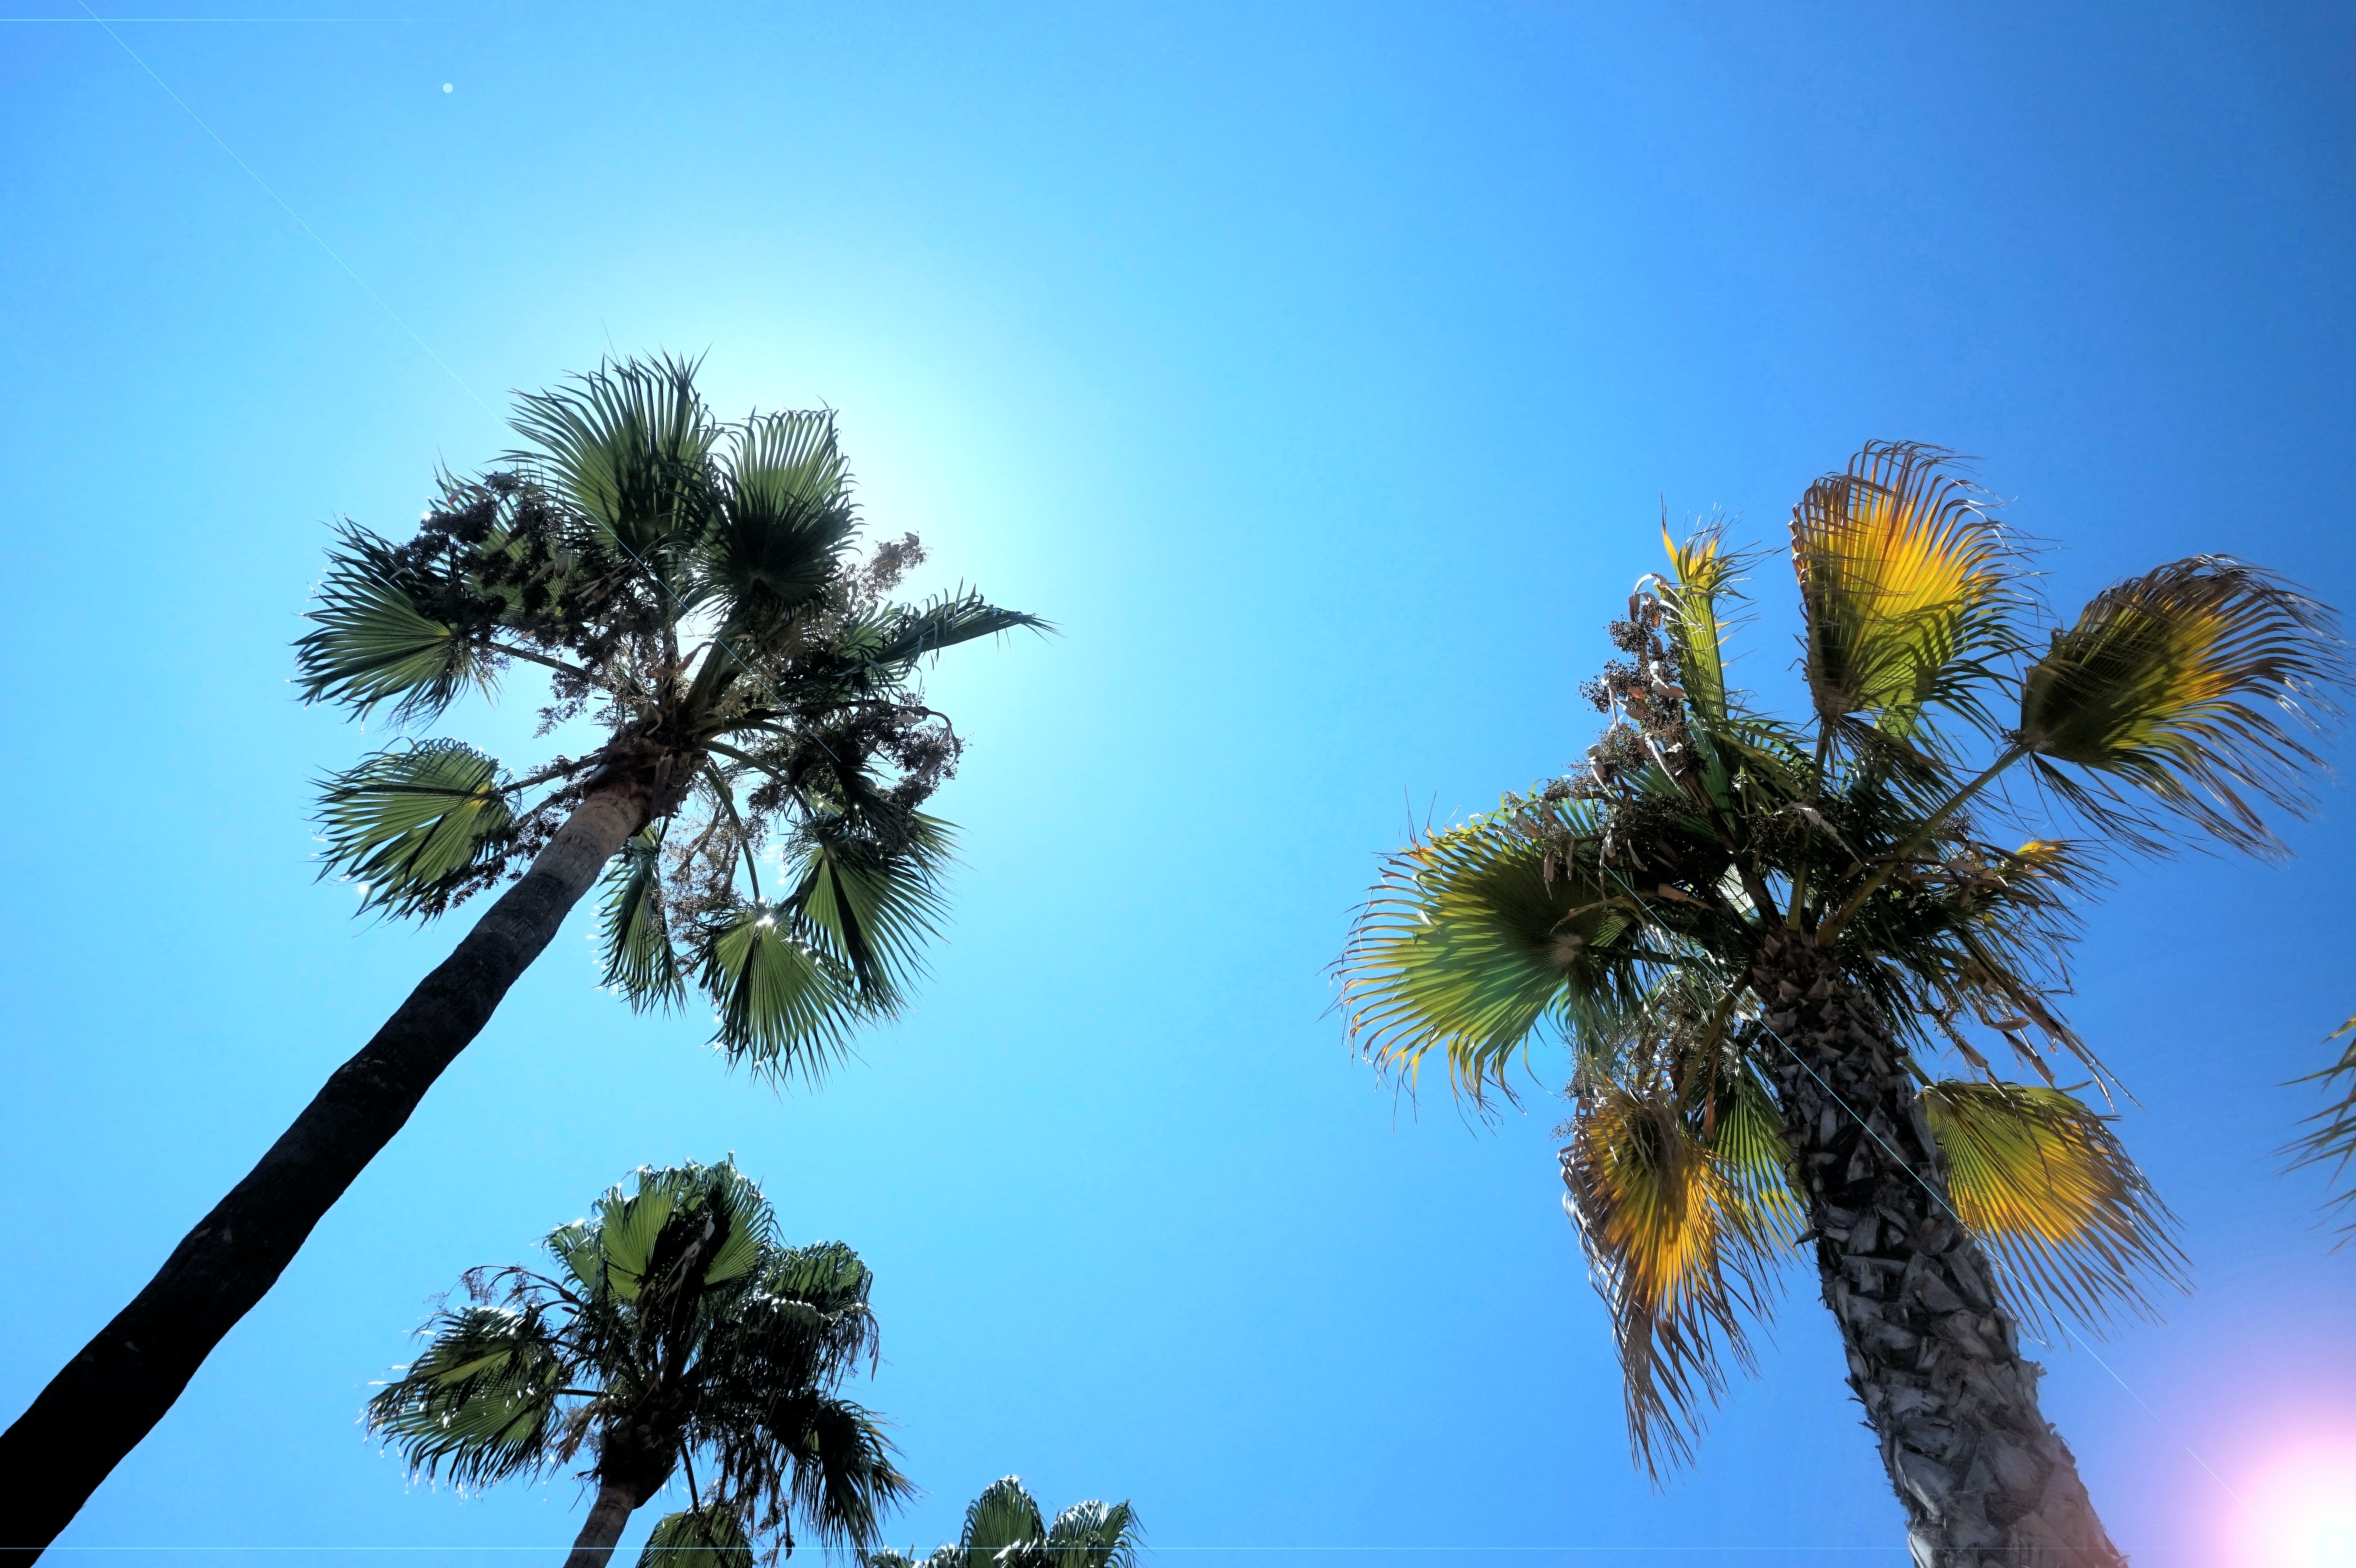 worm's eye-view photography of coconut palm trees